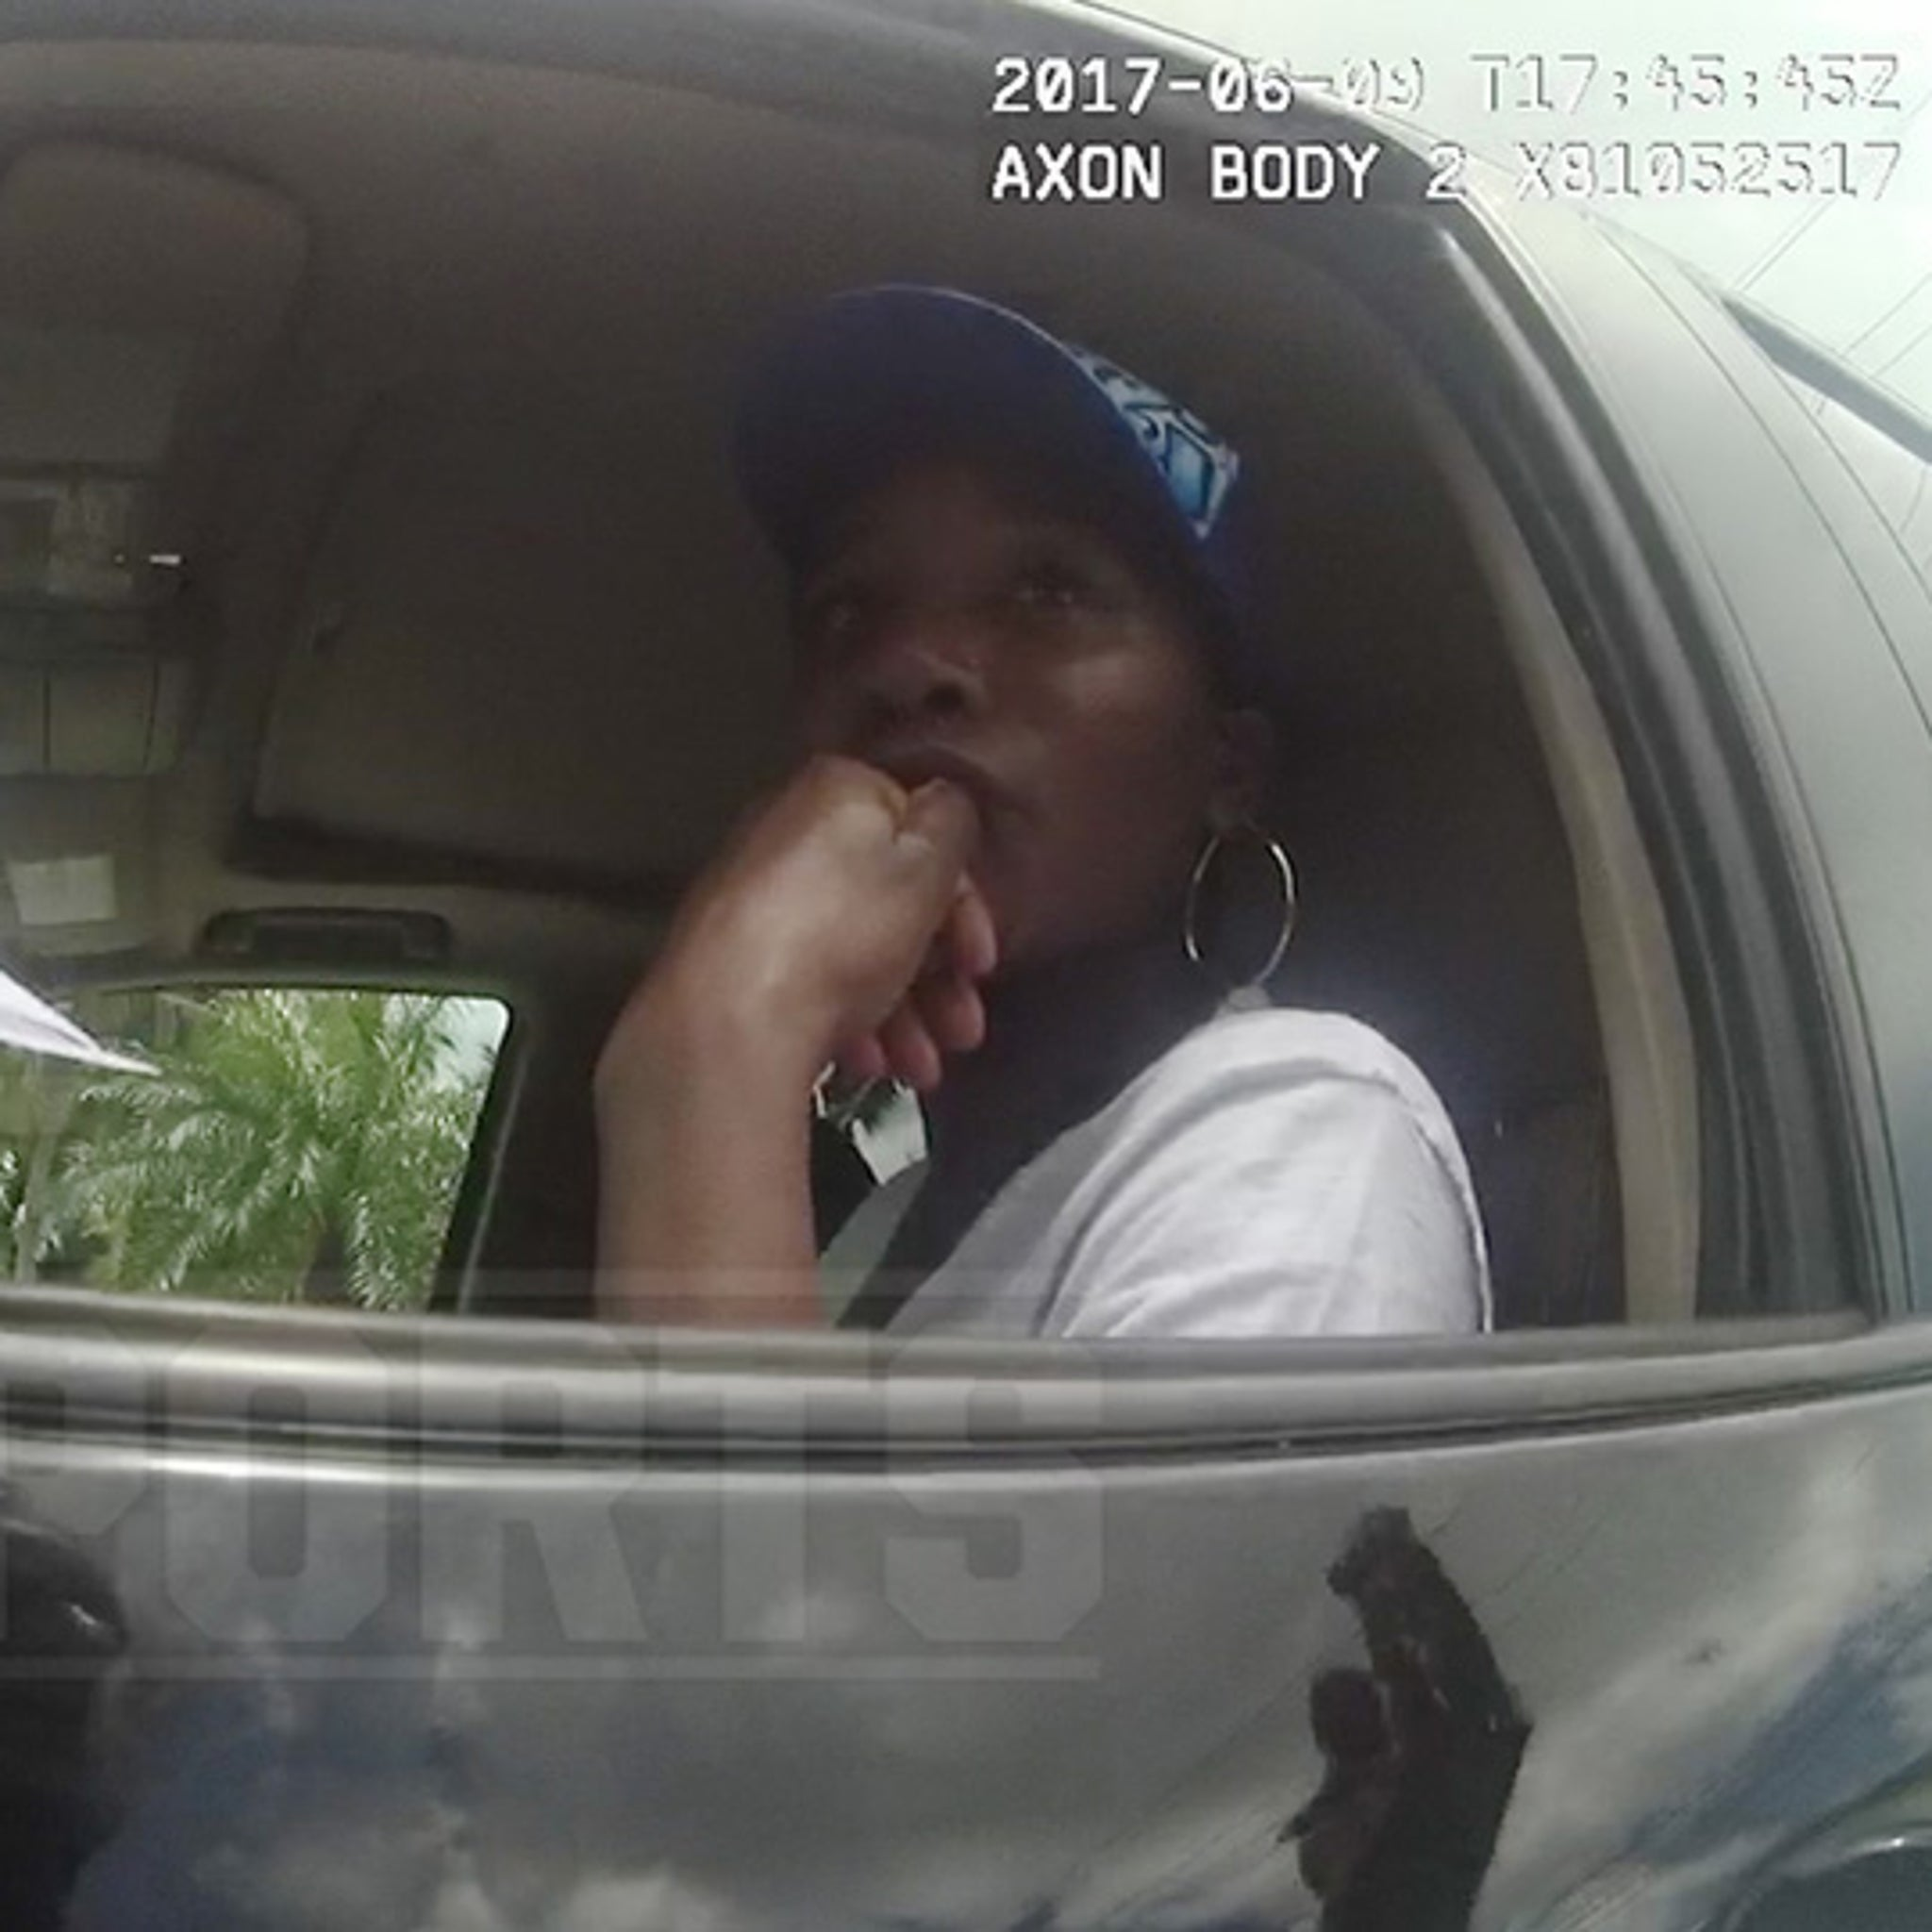 Venus Williams Fatal Accident Police Release Full Bodycam Footage